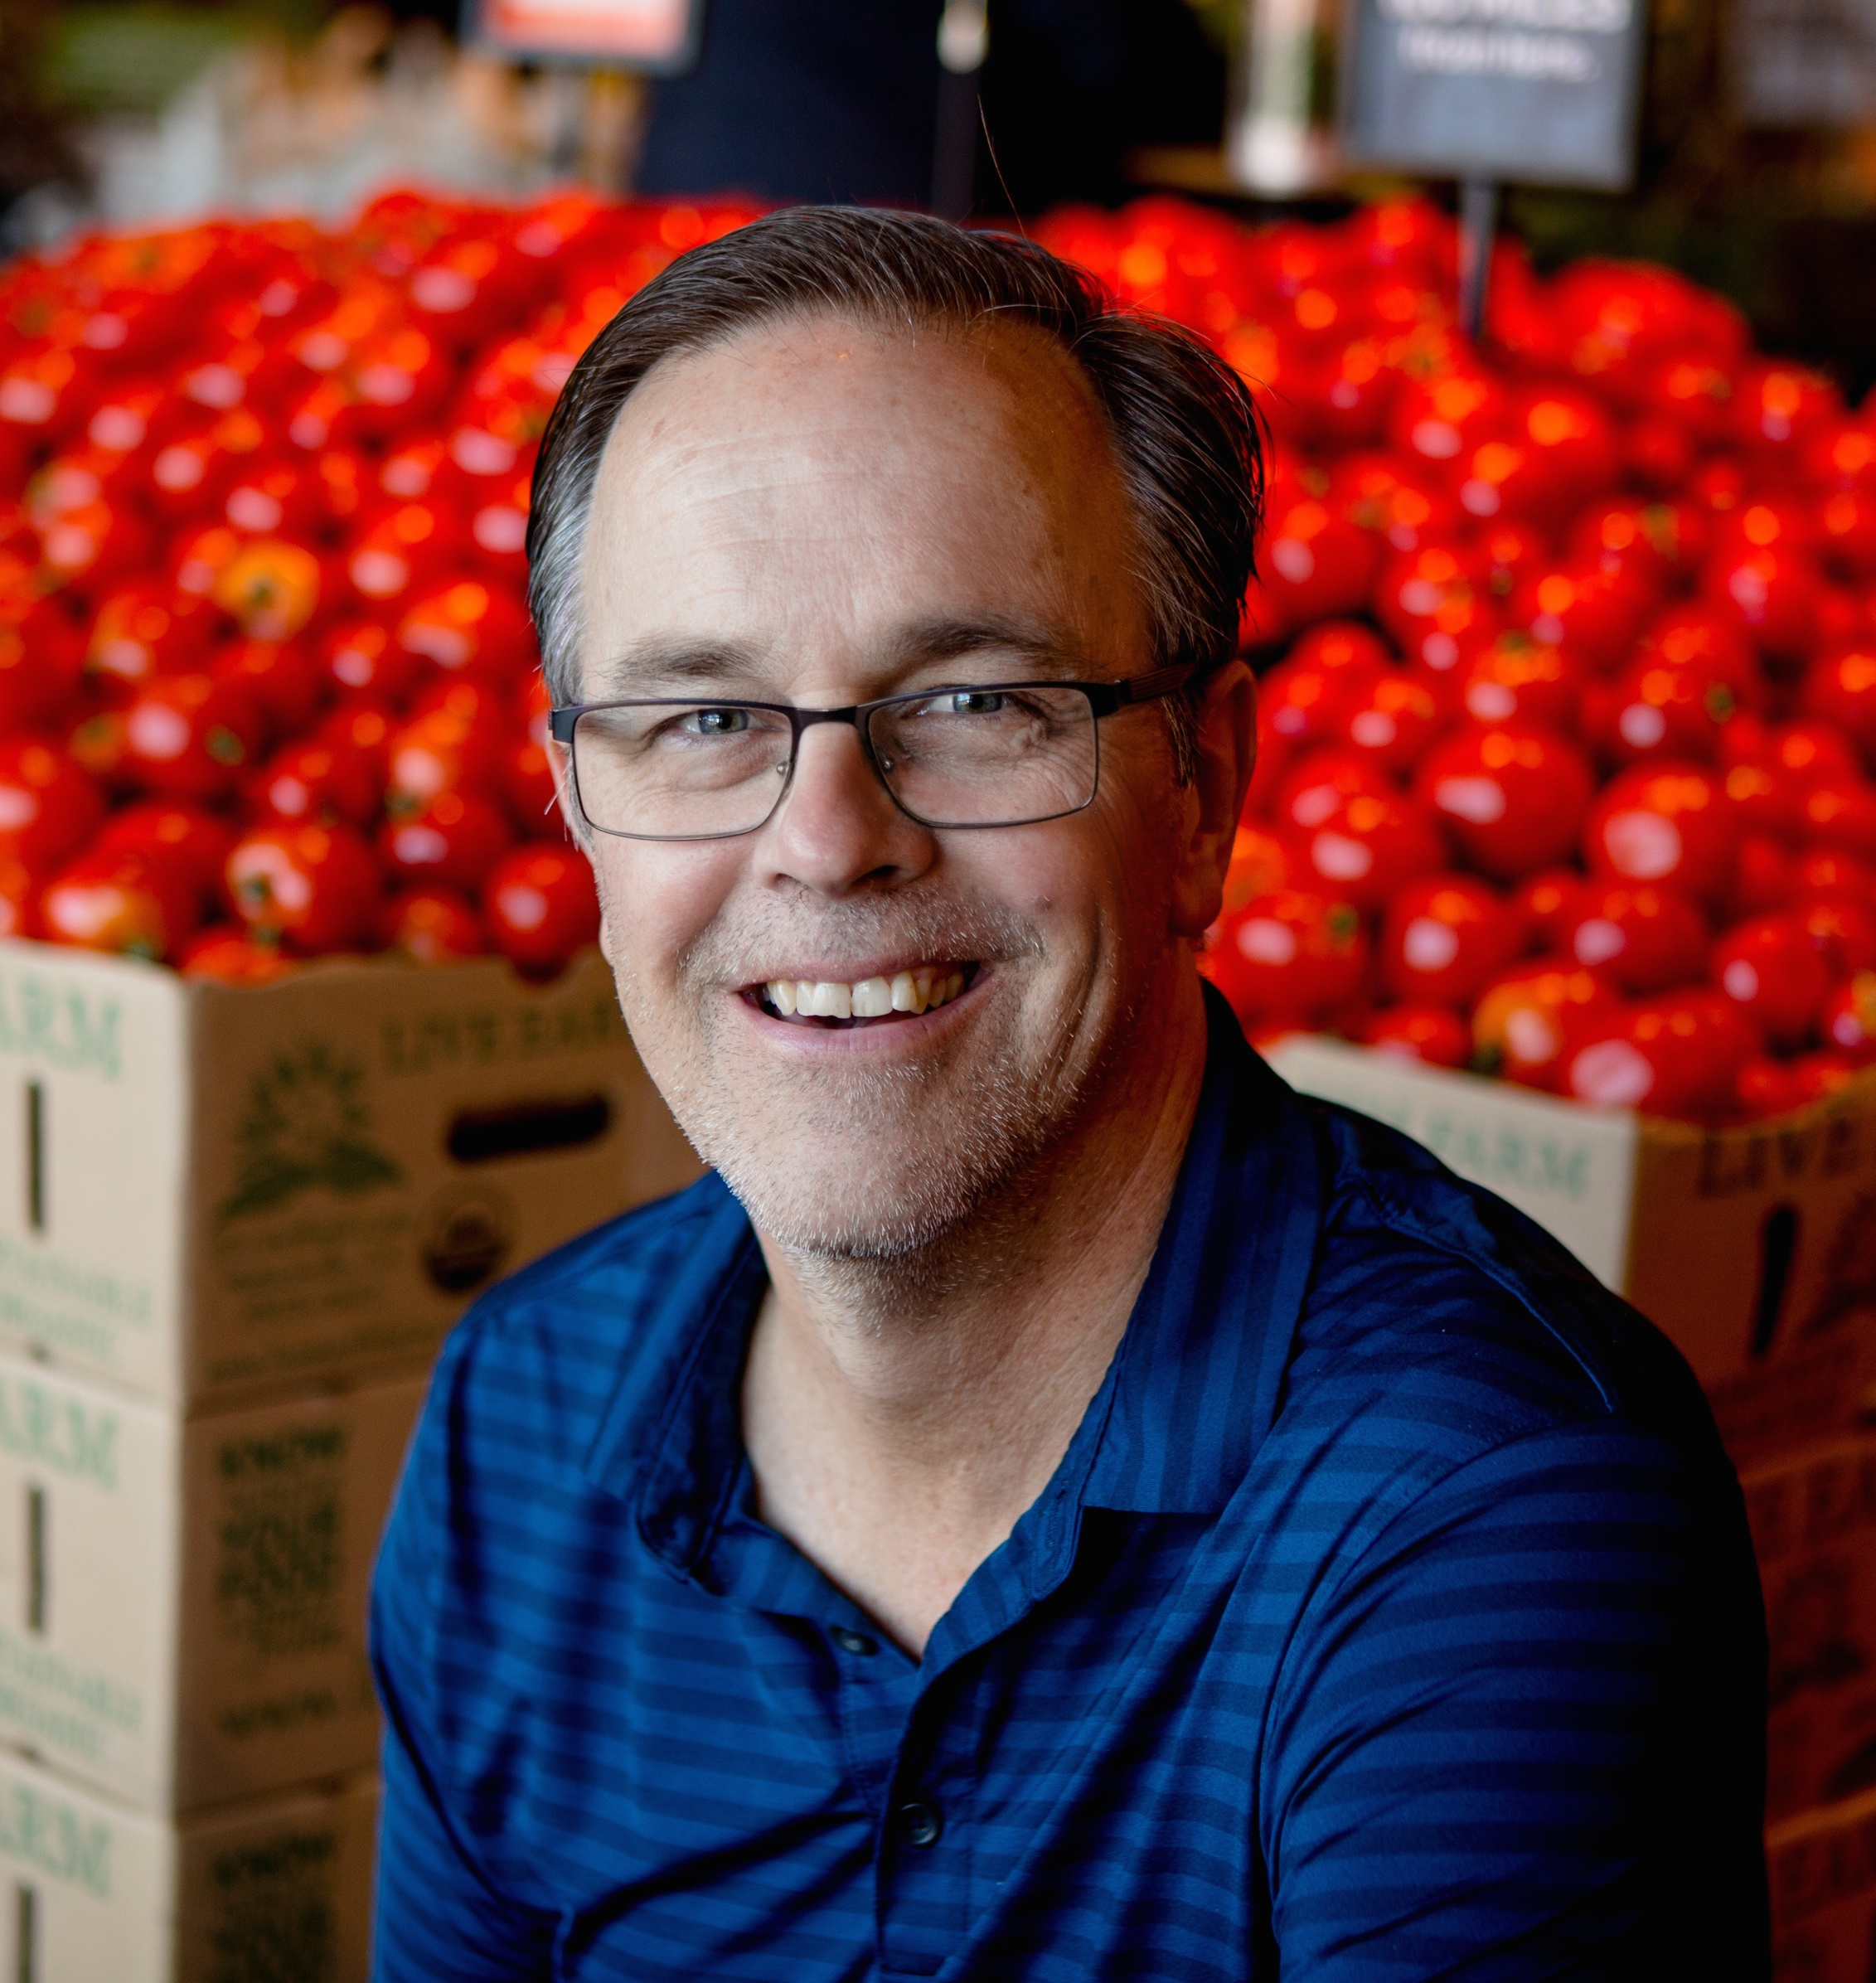 man smiling at camera in front of a pile of tomatoes